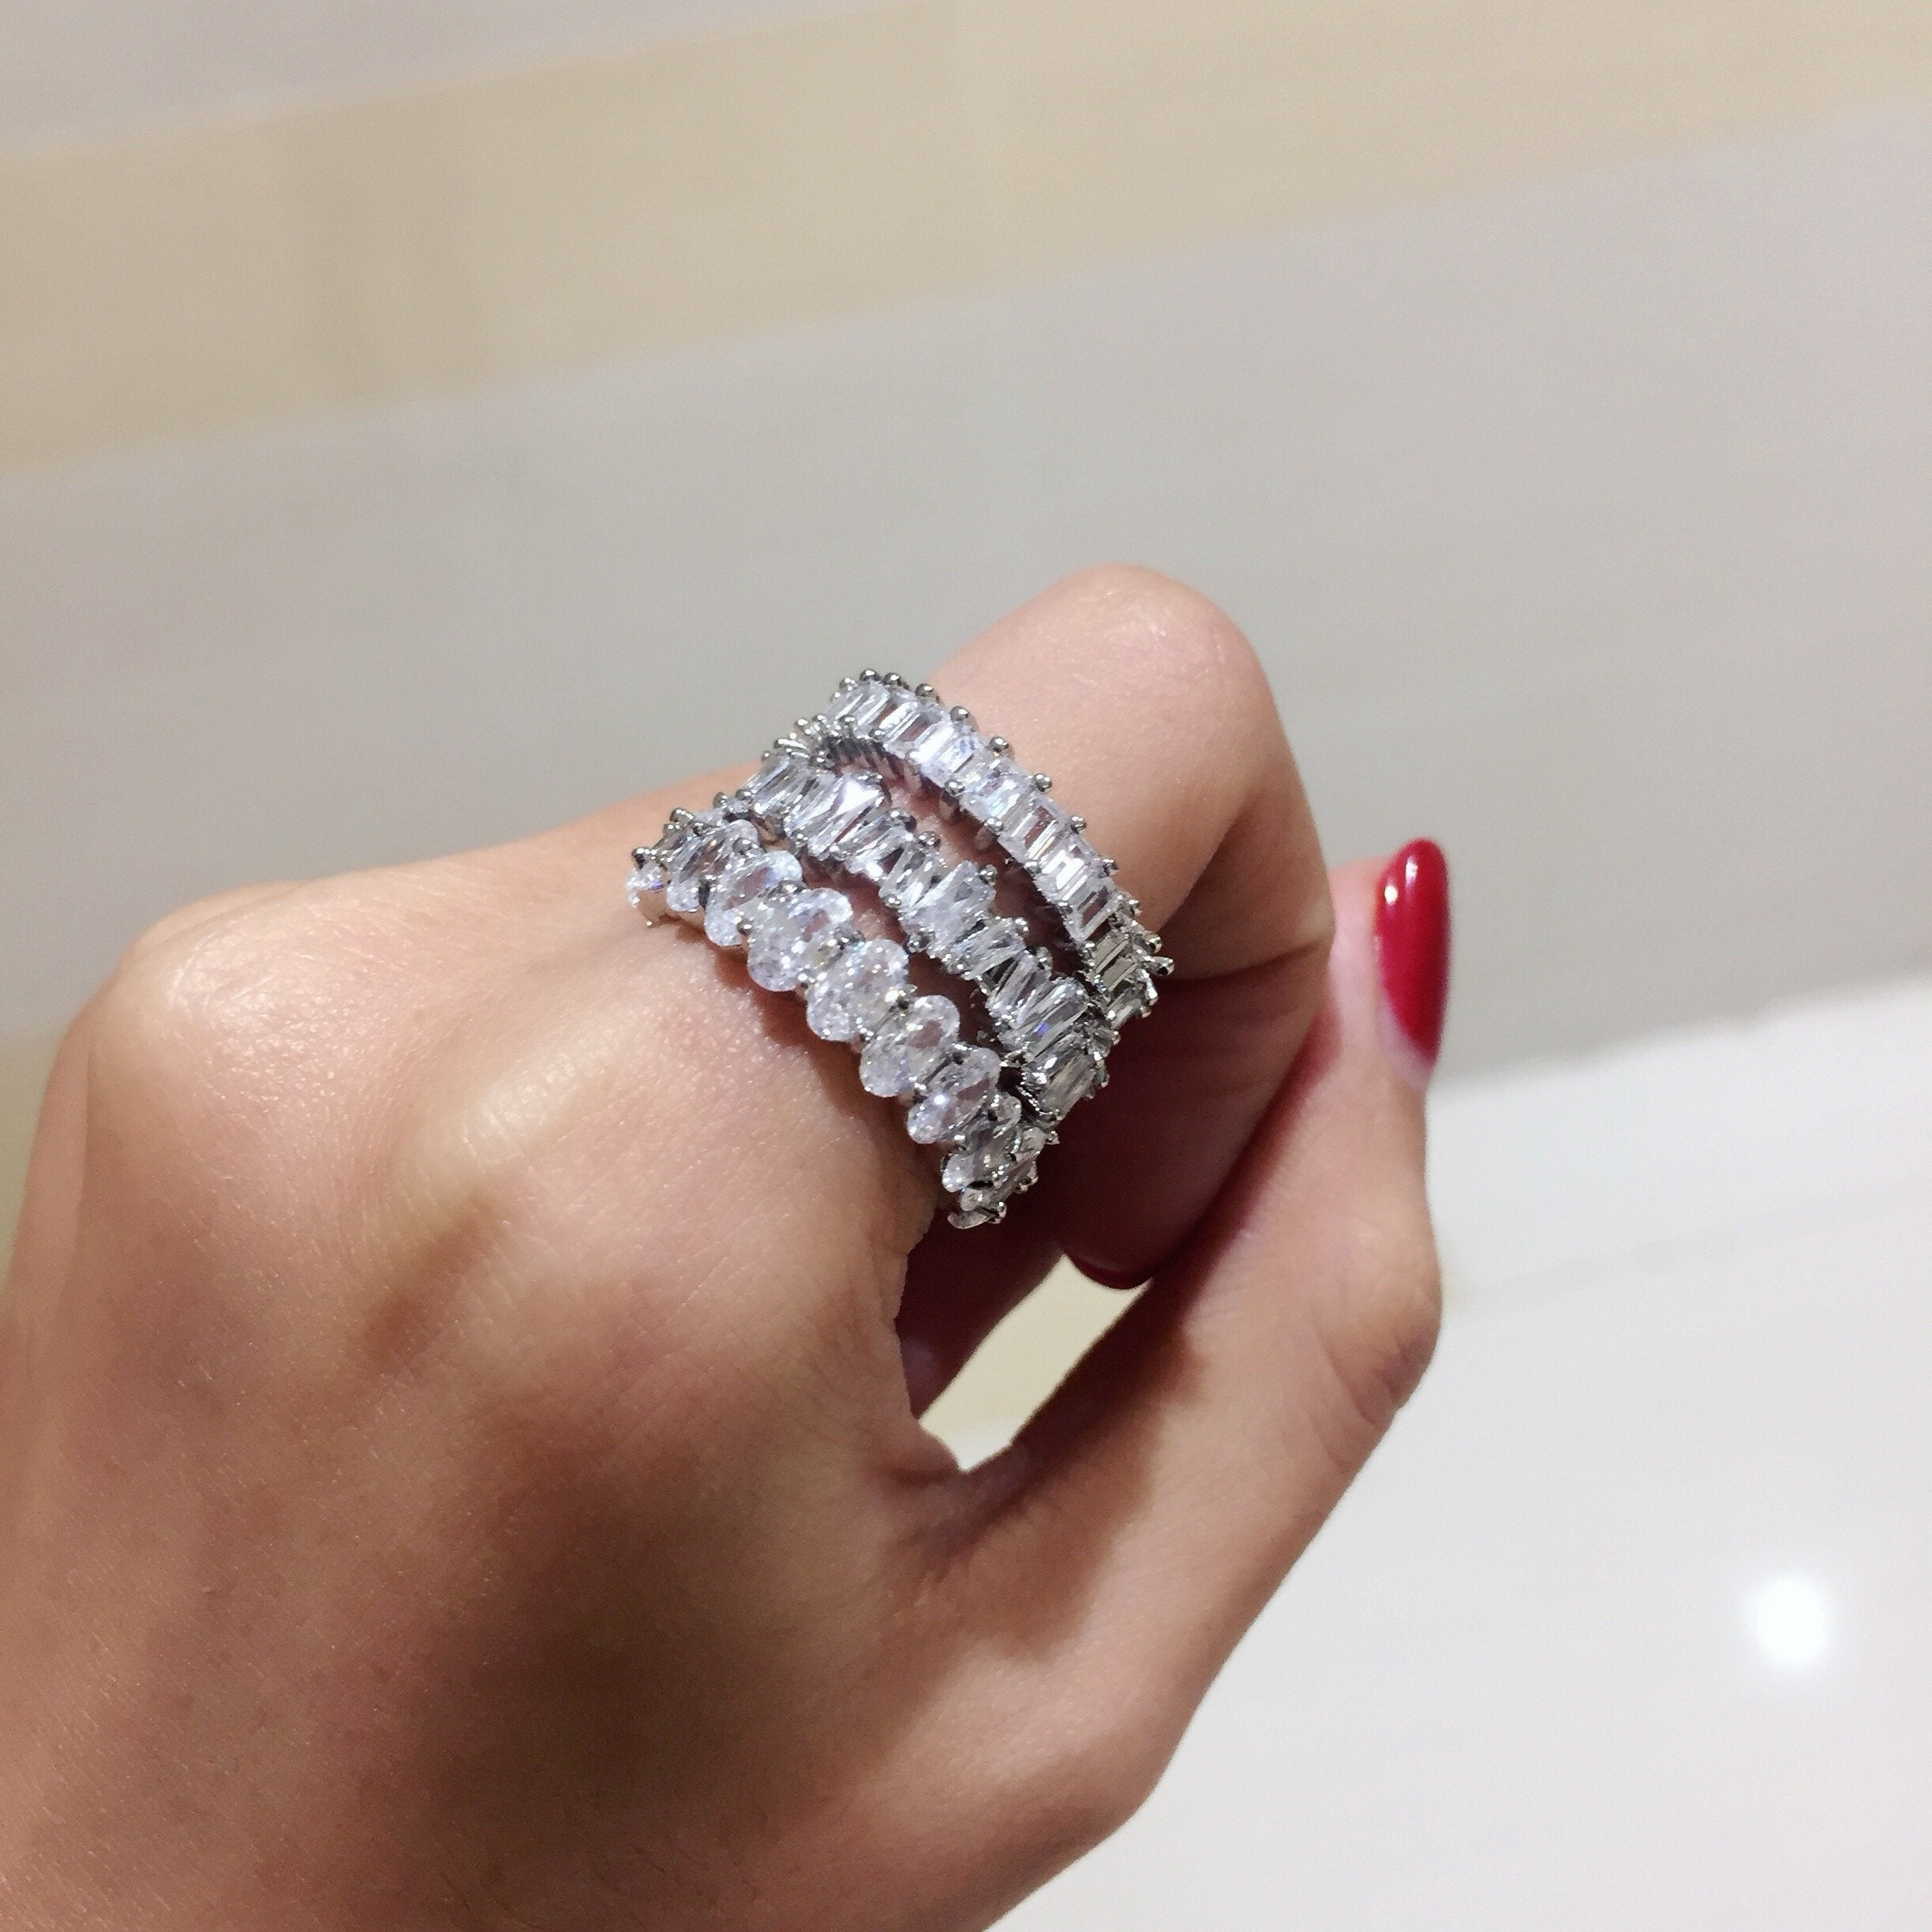 Kensington Ring Silver - House of Carats